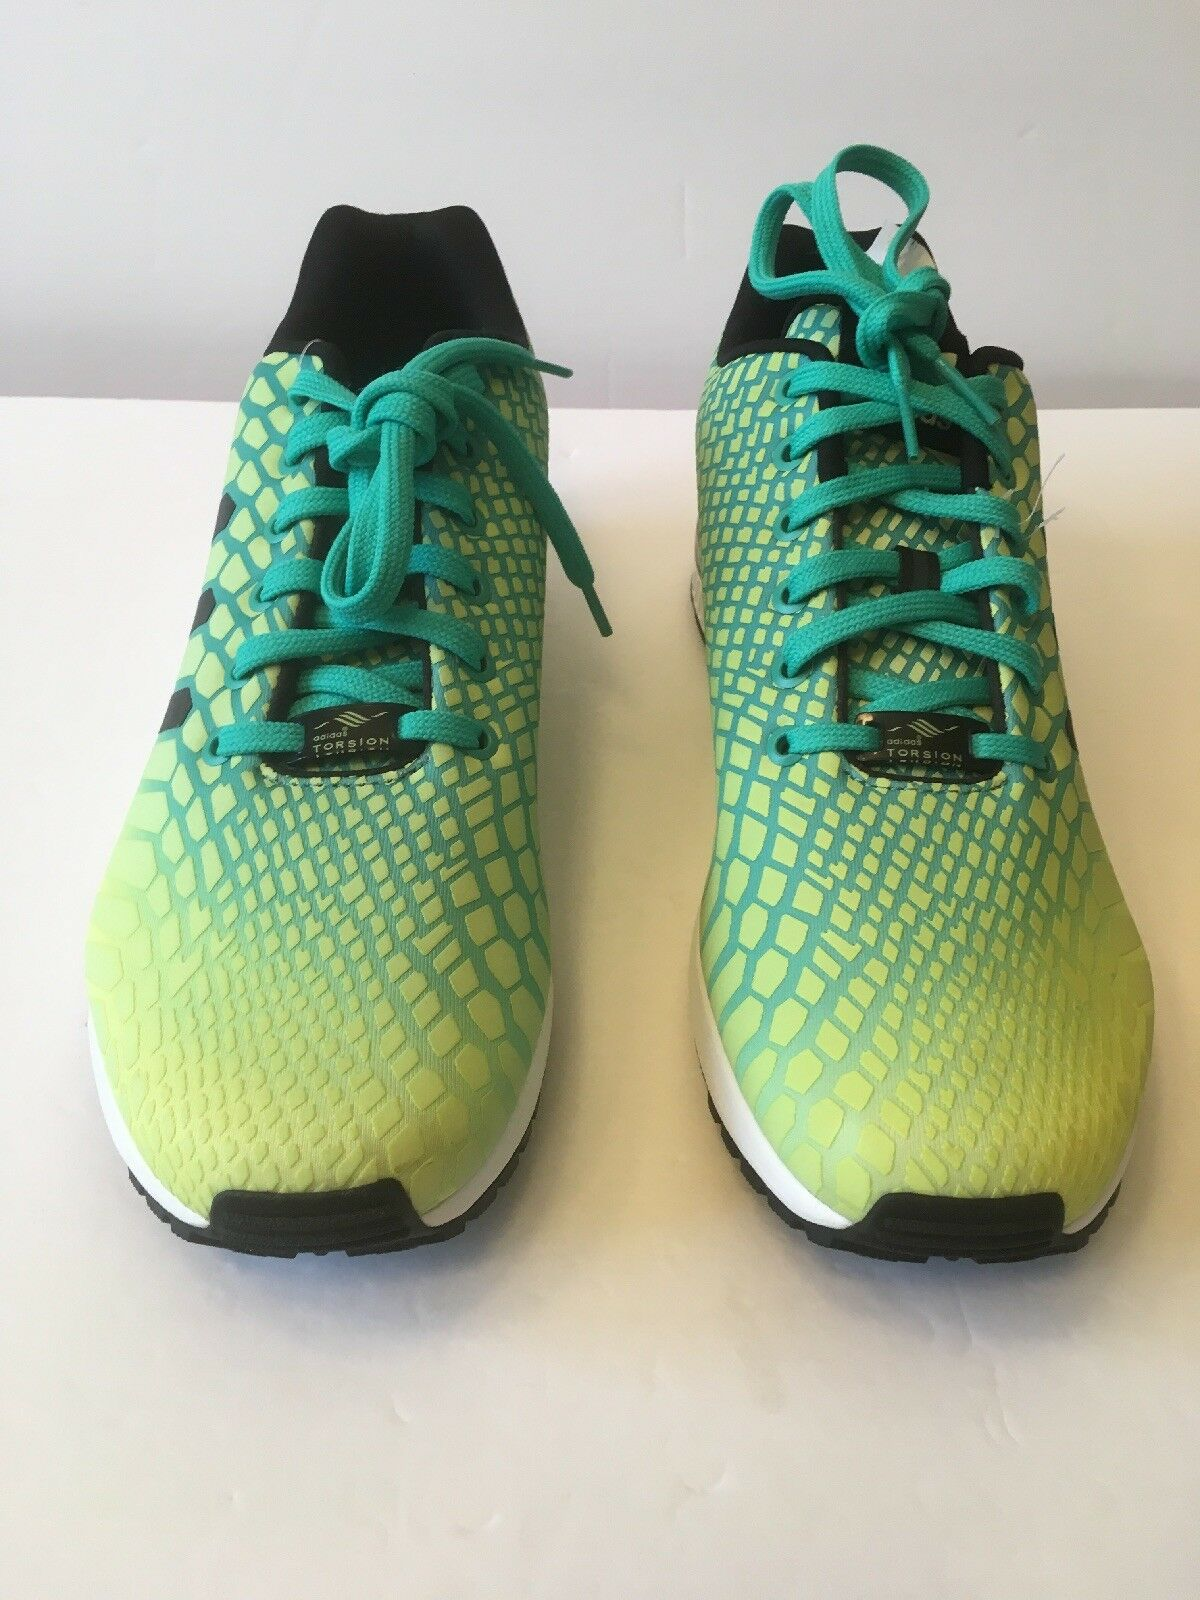 best loved 7c37e 11501 Adidas AQ8212 shoes 10 Sz Men Yellow Green Running Glow ...